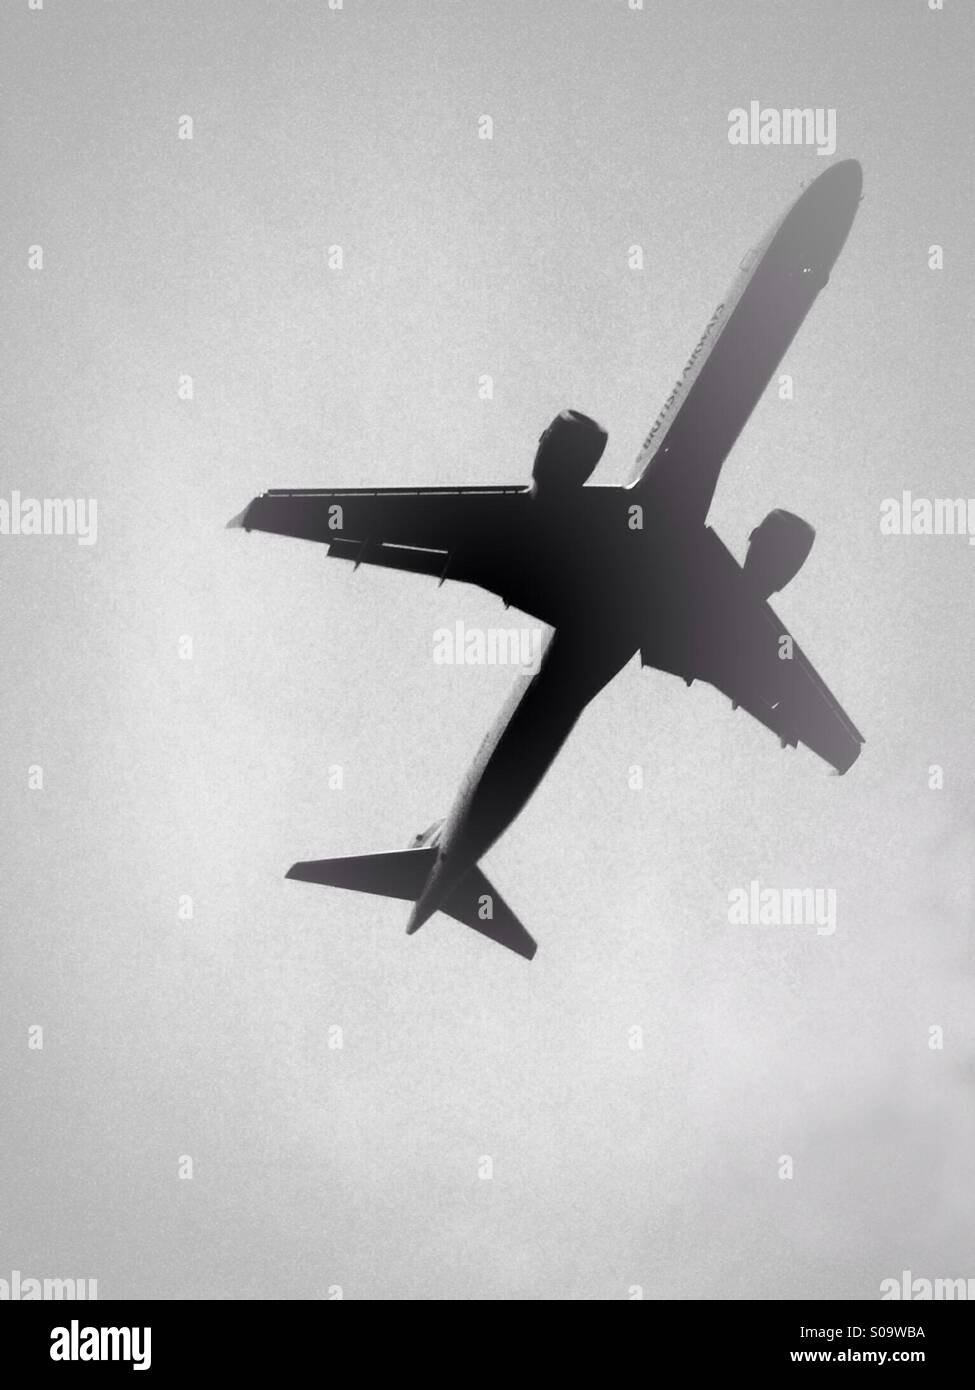 Low flying passenger aircraft coming in to land - Stock Image